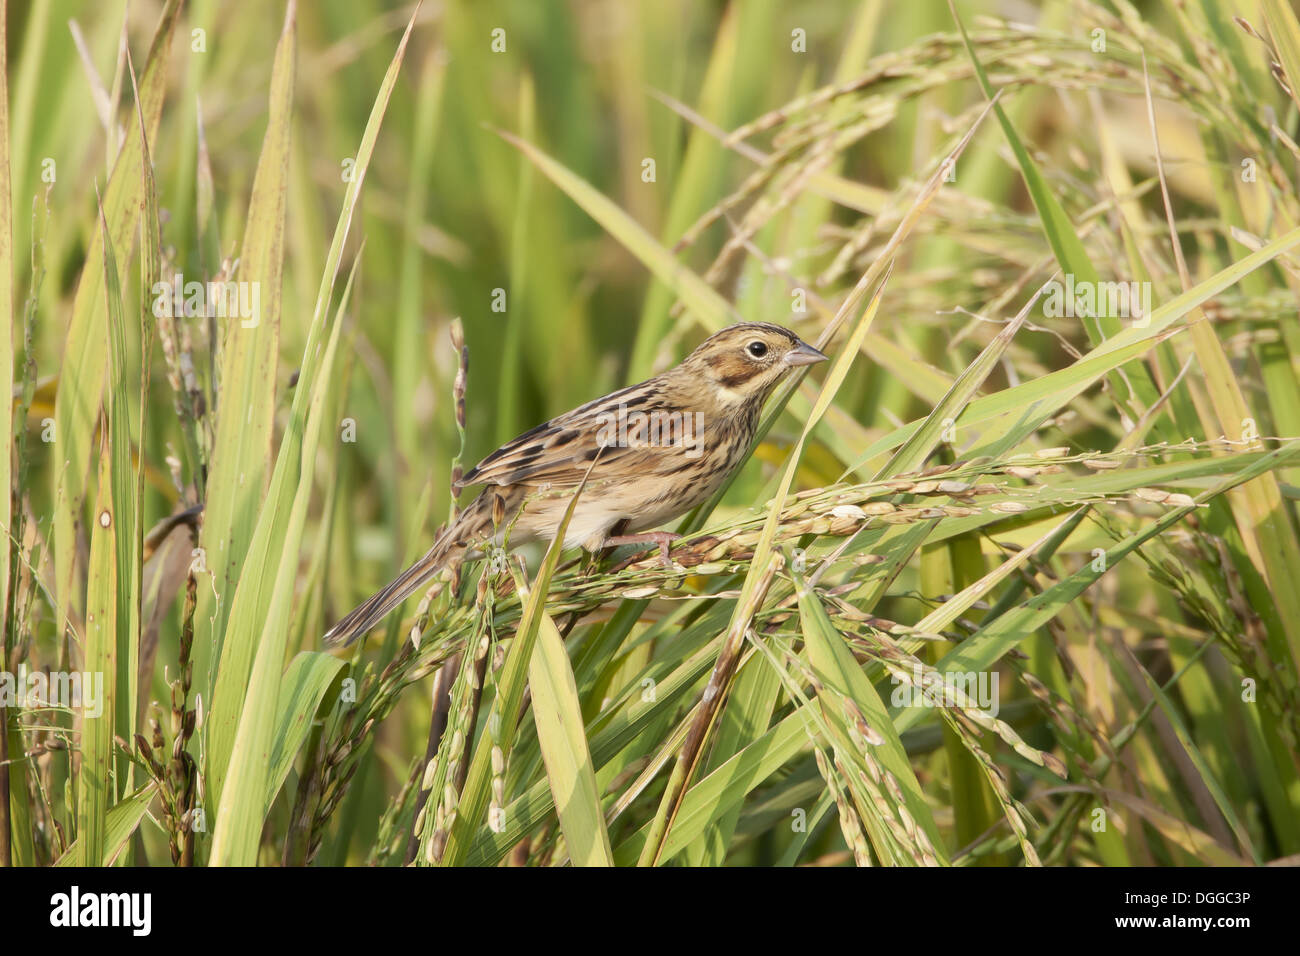 Chestnut-eared Bunting (Emberiza fucata) adult female, feeding on rice seeds, Long Valley, Hong Kong, China, OctoberStock Photo